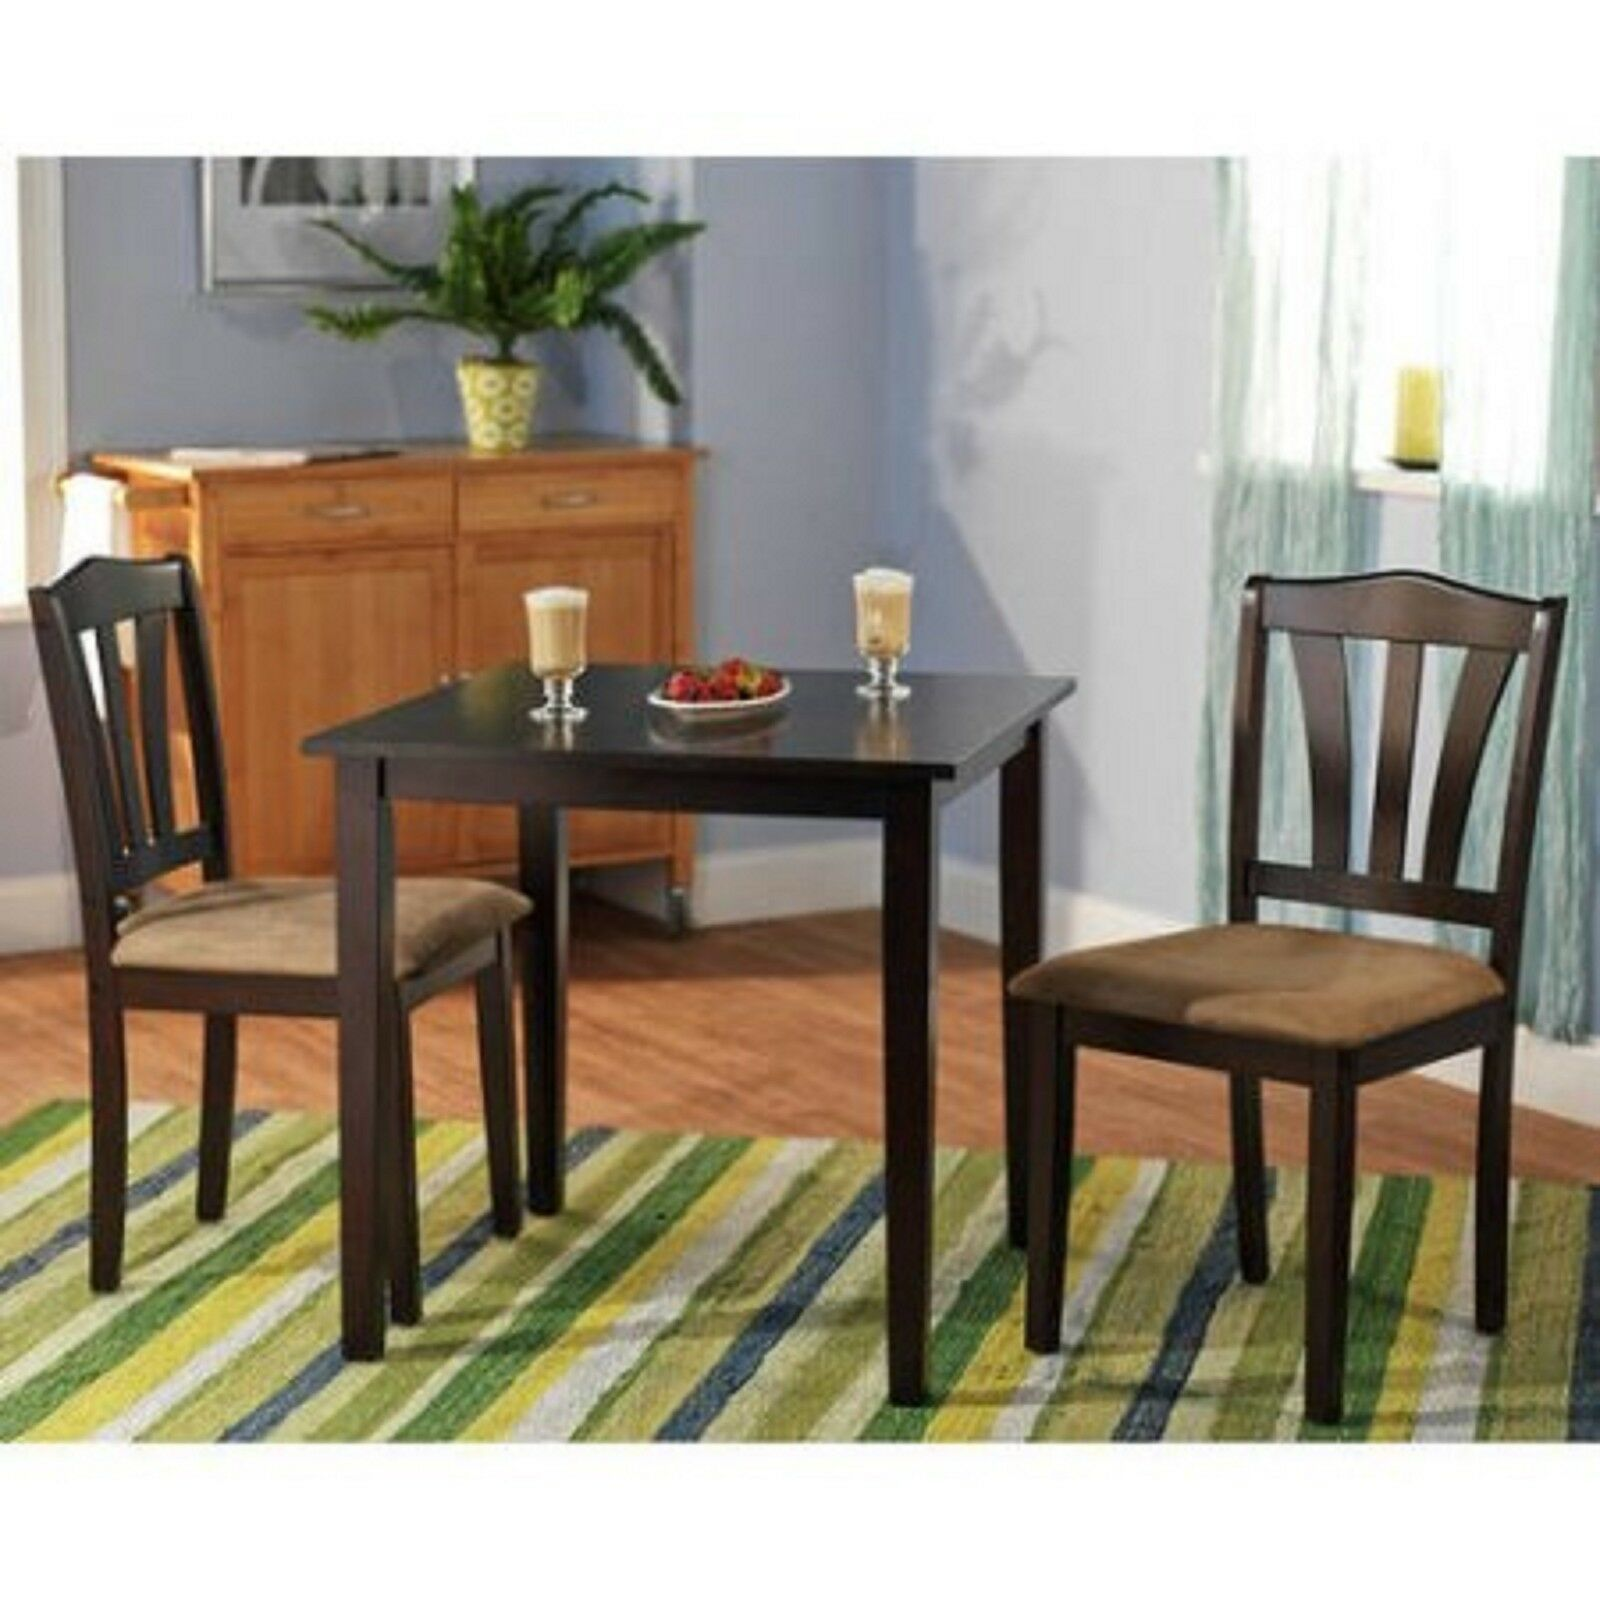 3 Pc Dining Set Table 2 Chairs Kitchen Room Wood Furniture Small Dinette Modern